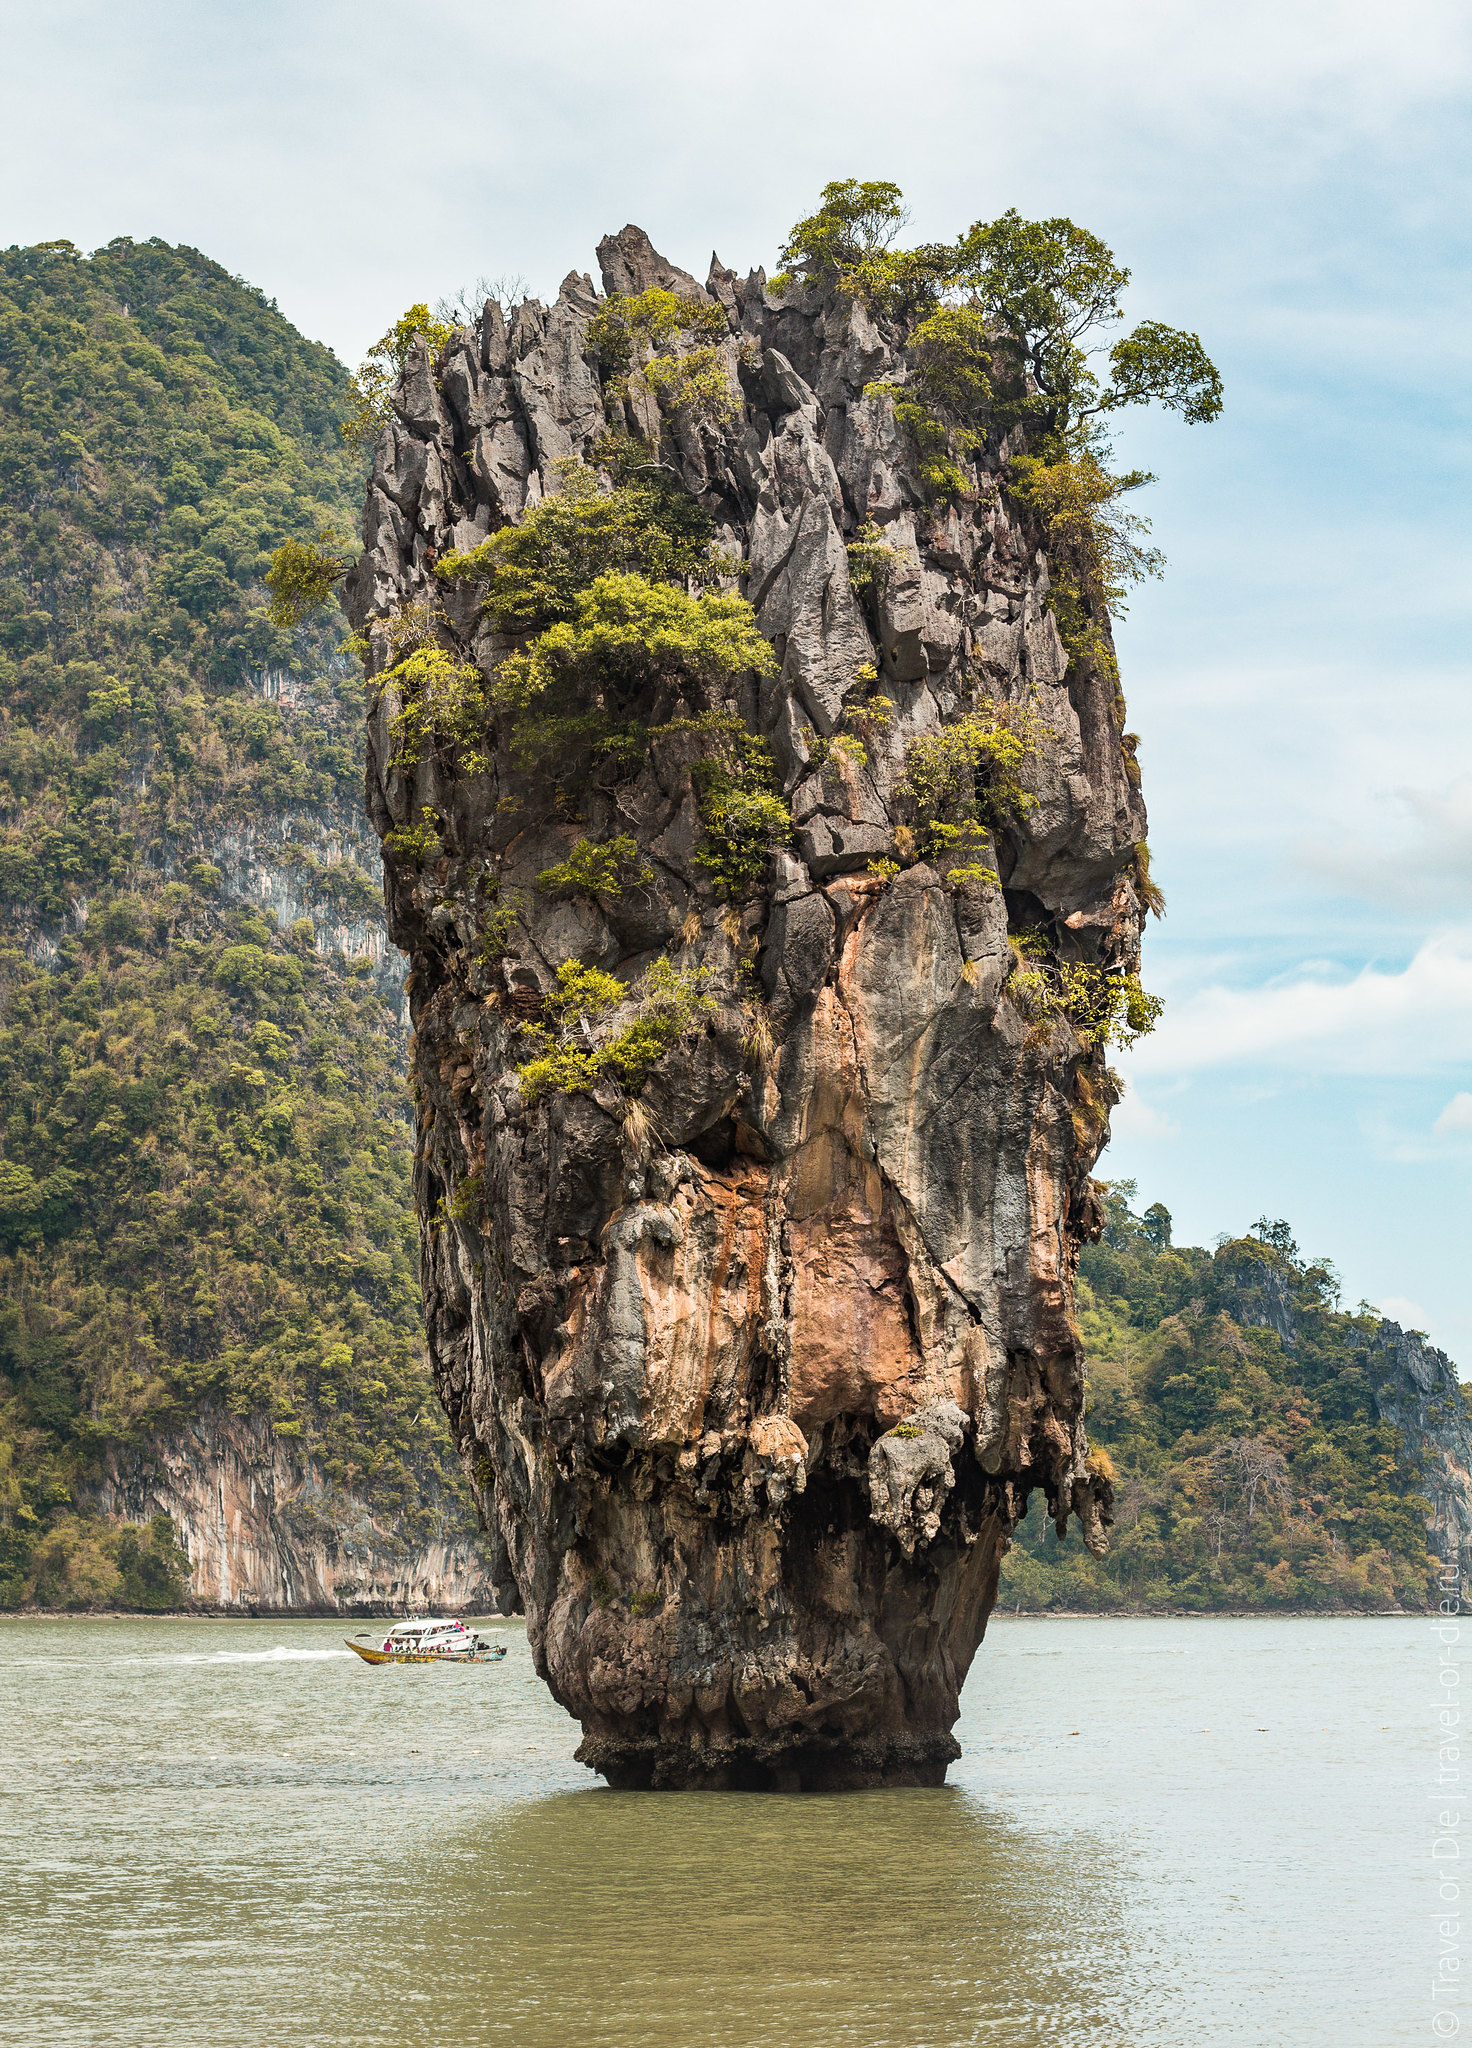 James-Bond-Island-Ko-Tapu-Thailand-9071